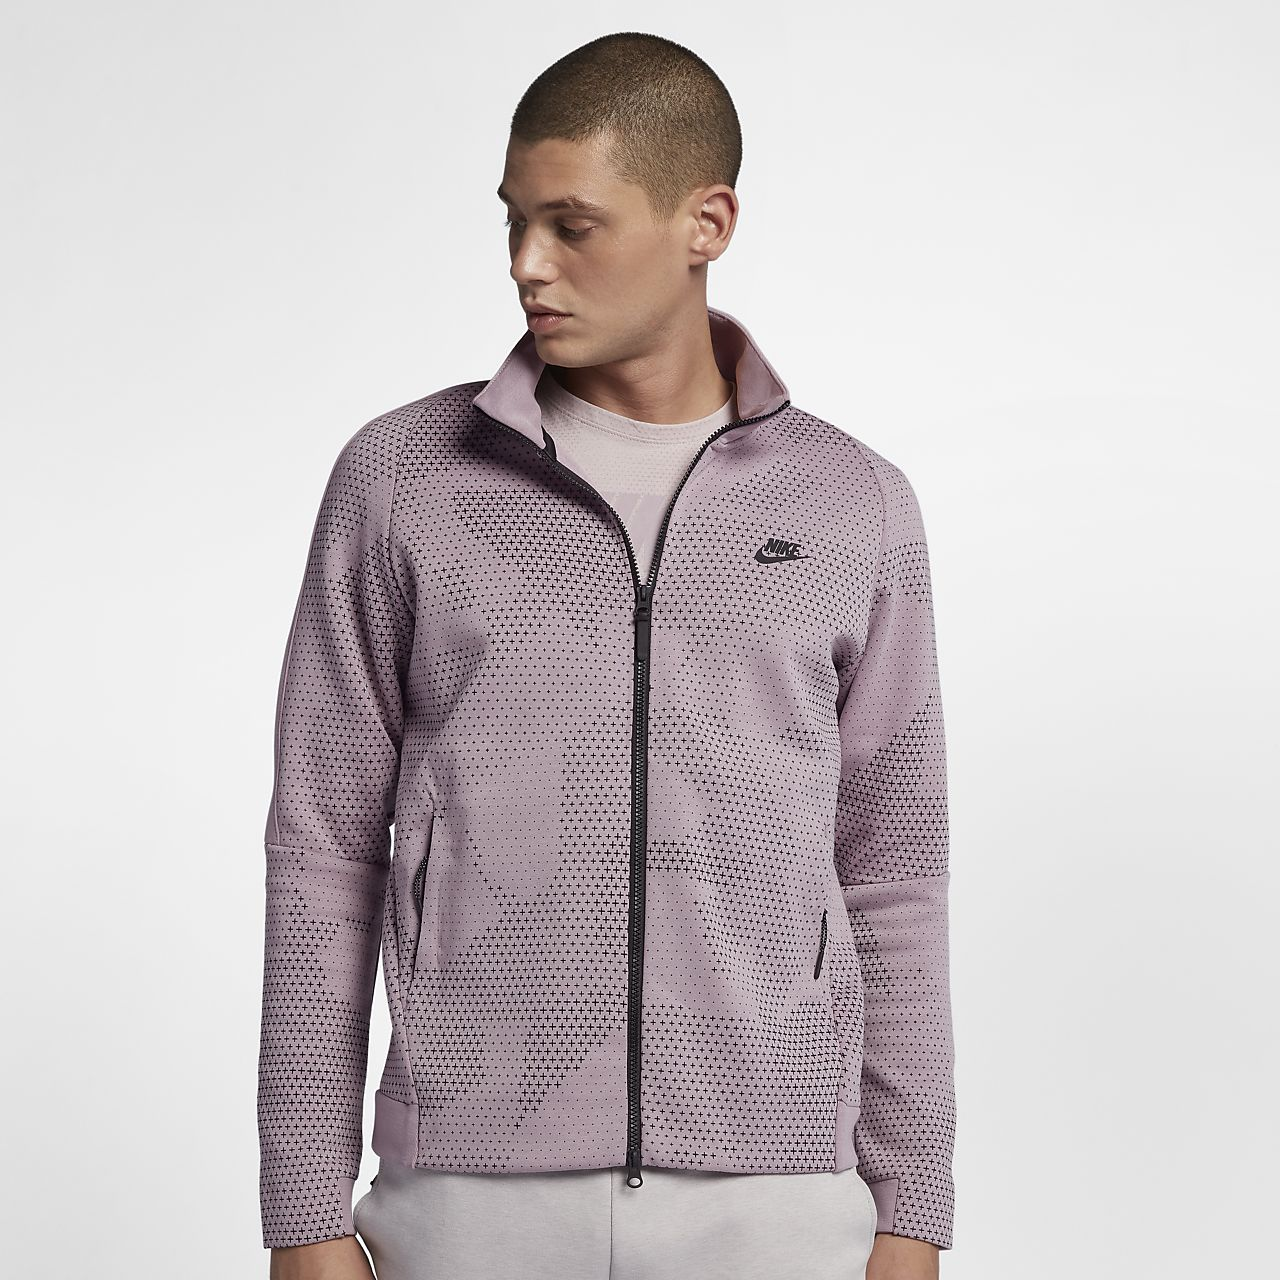 f5de076b9ba9 Nike Sportswear Tech Fleece Men s Jacket. Nike.com CA